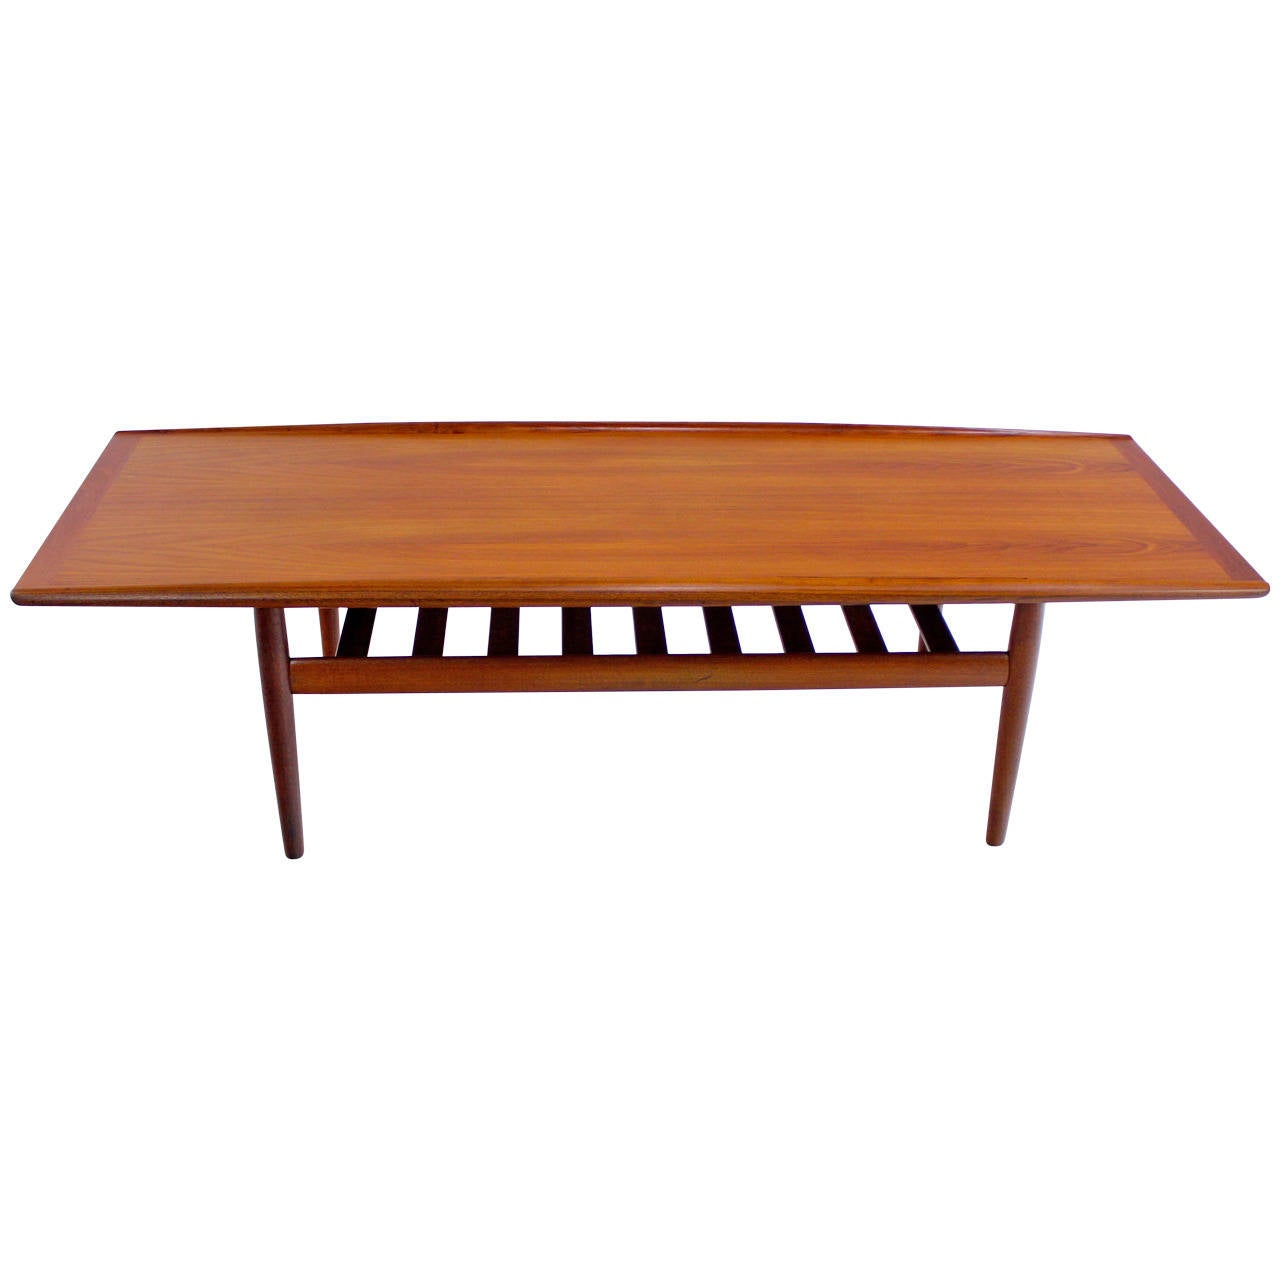 Danish Modern Solid Teak Coffee Table Designed By Grete Jalk At 1stdibs